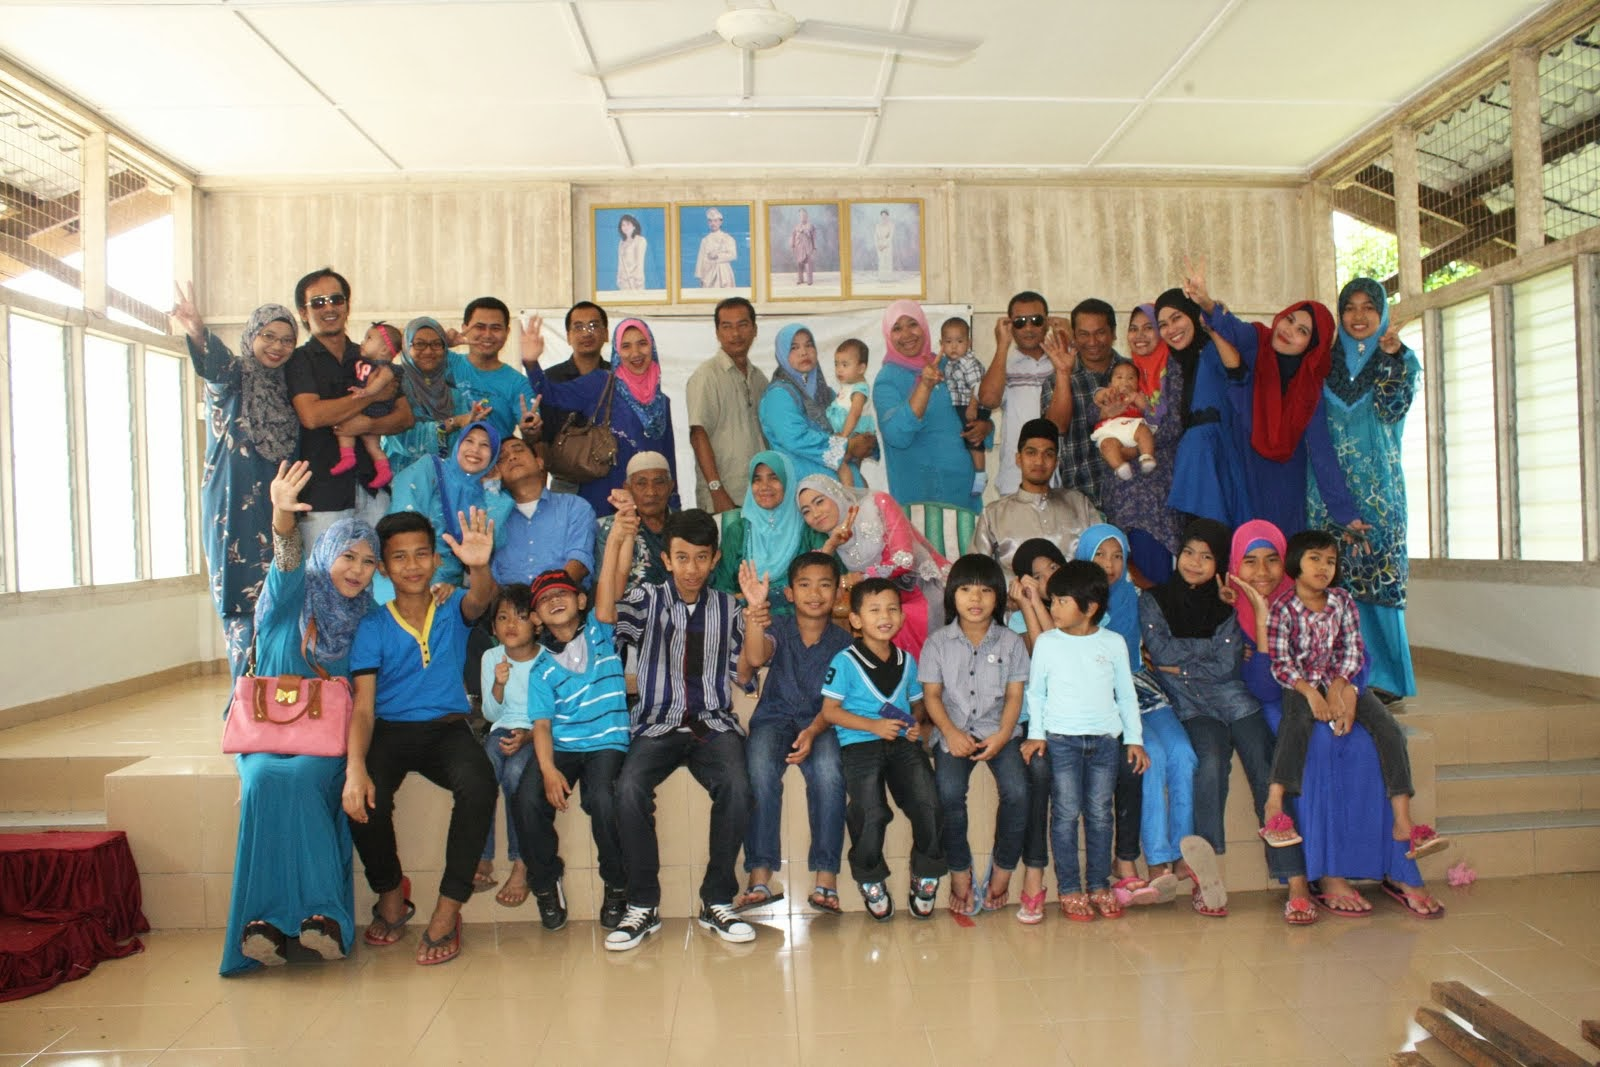 My Big-Big-Big Family